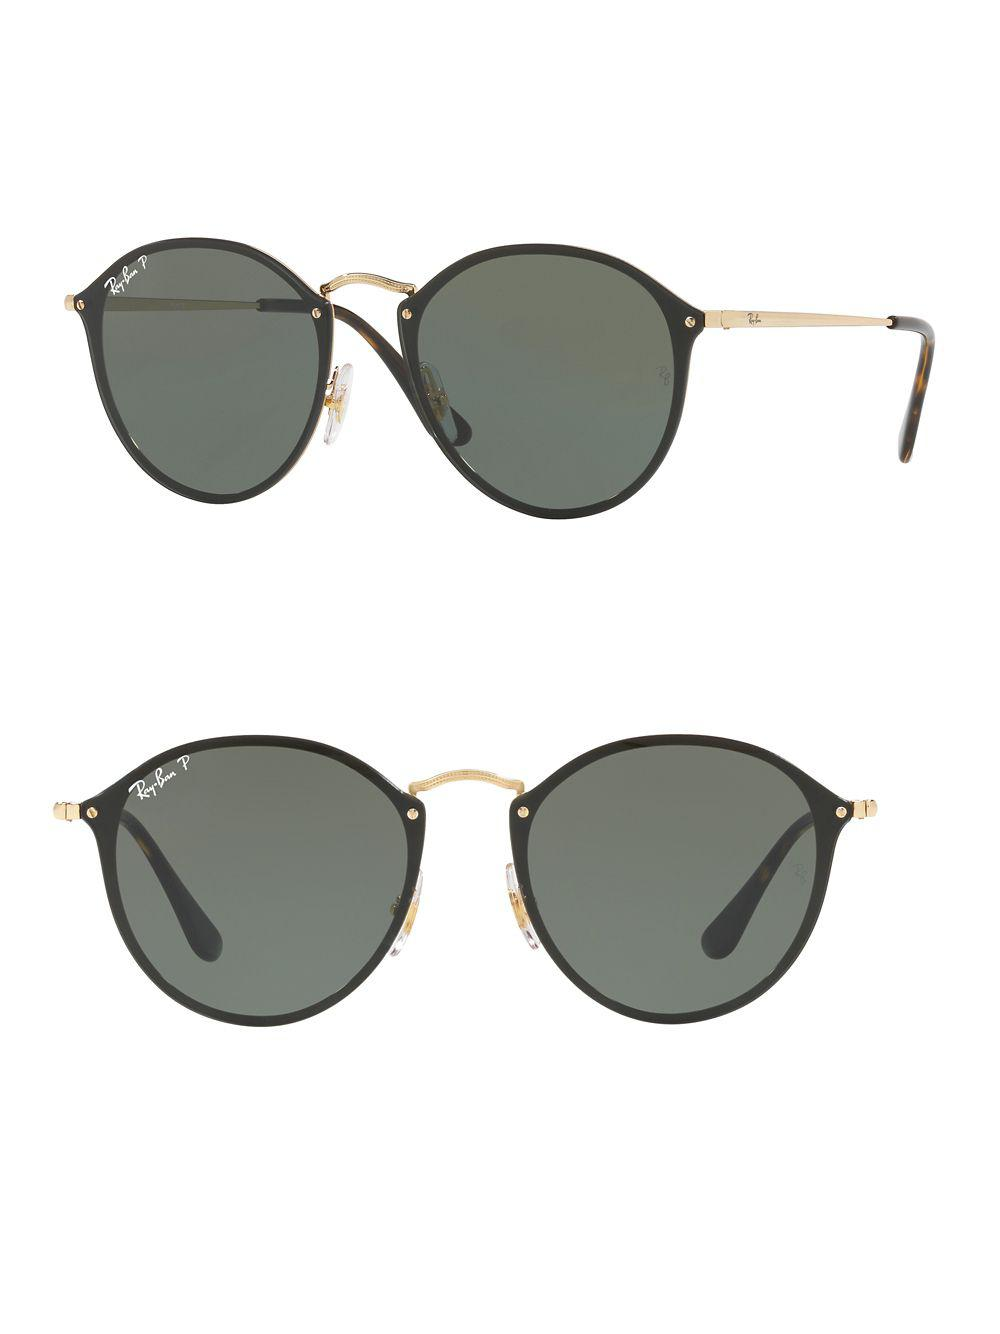 220f853764 Lyst - Ray-Ban Blaze Round Sunglasses in Metallic